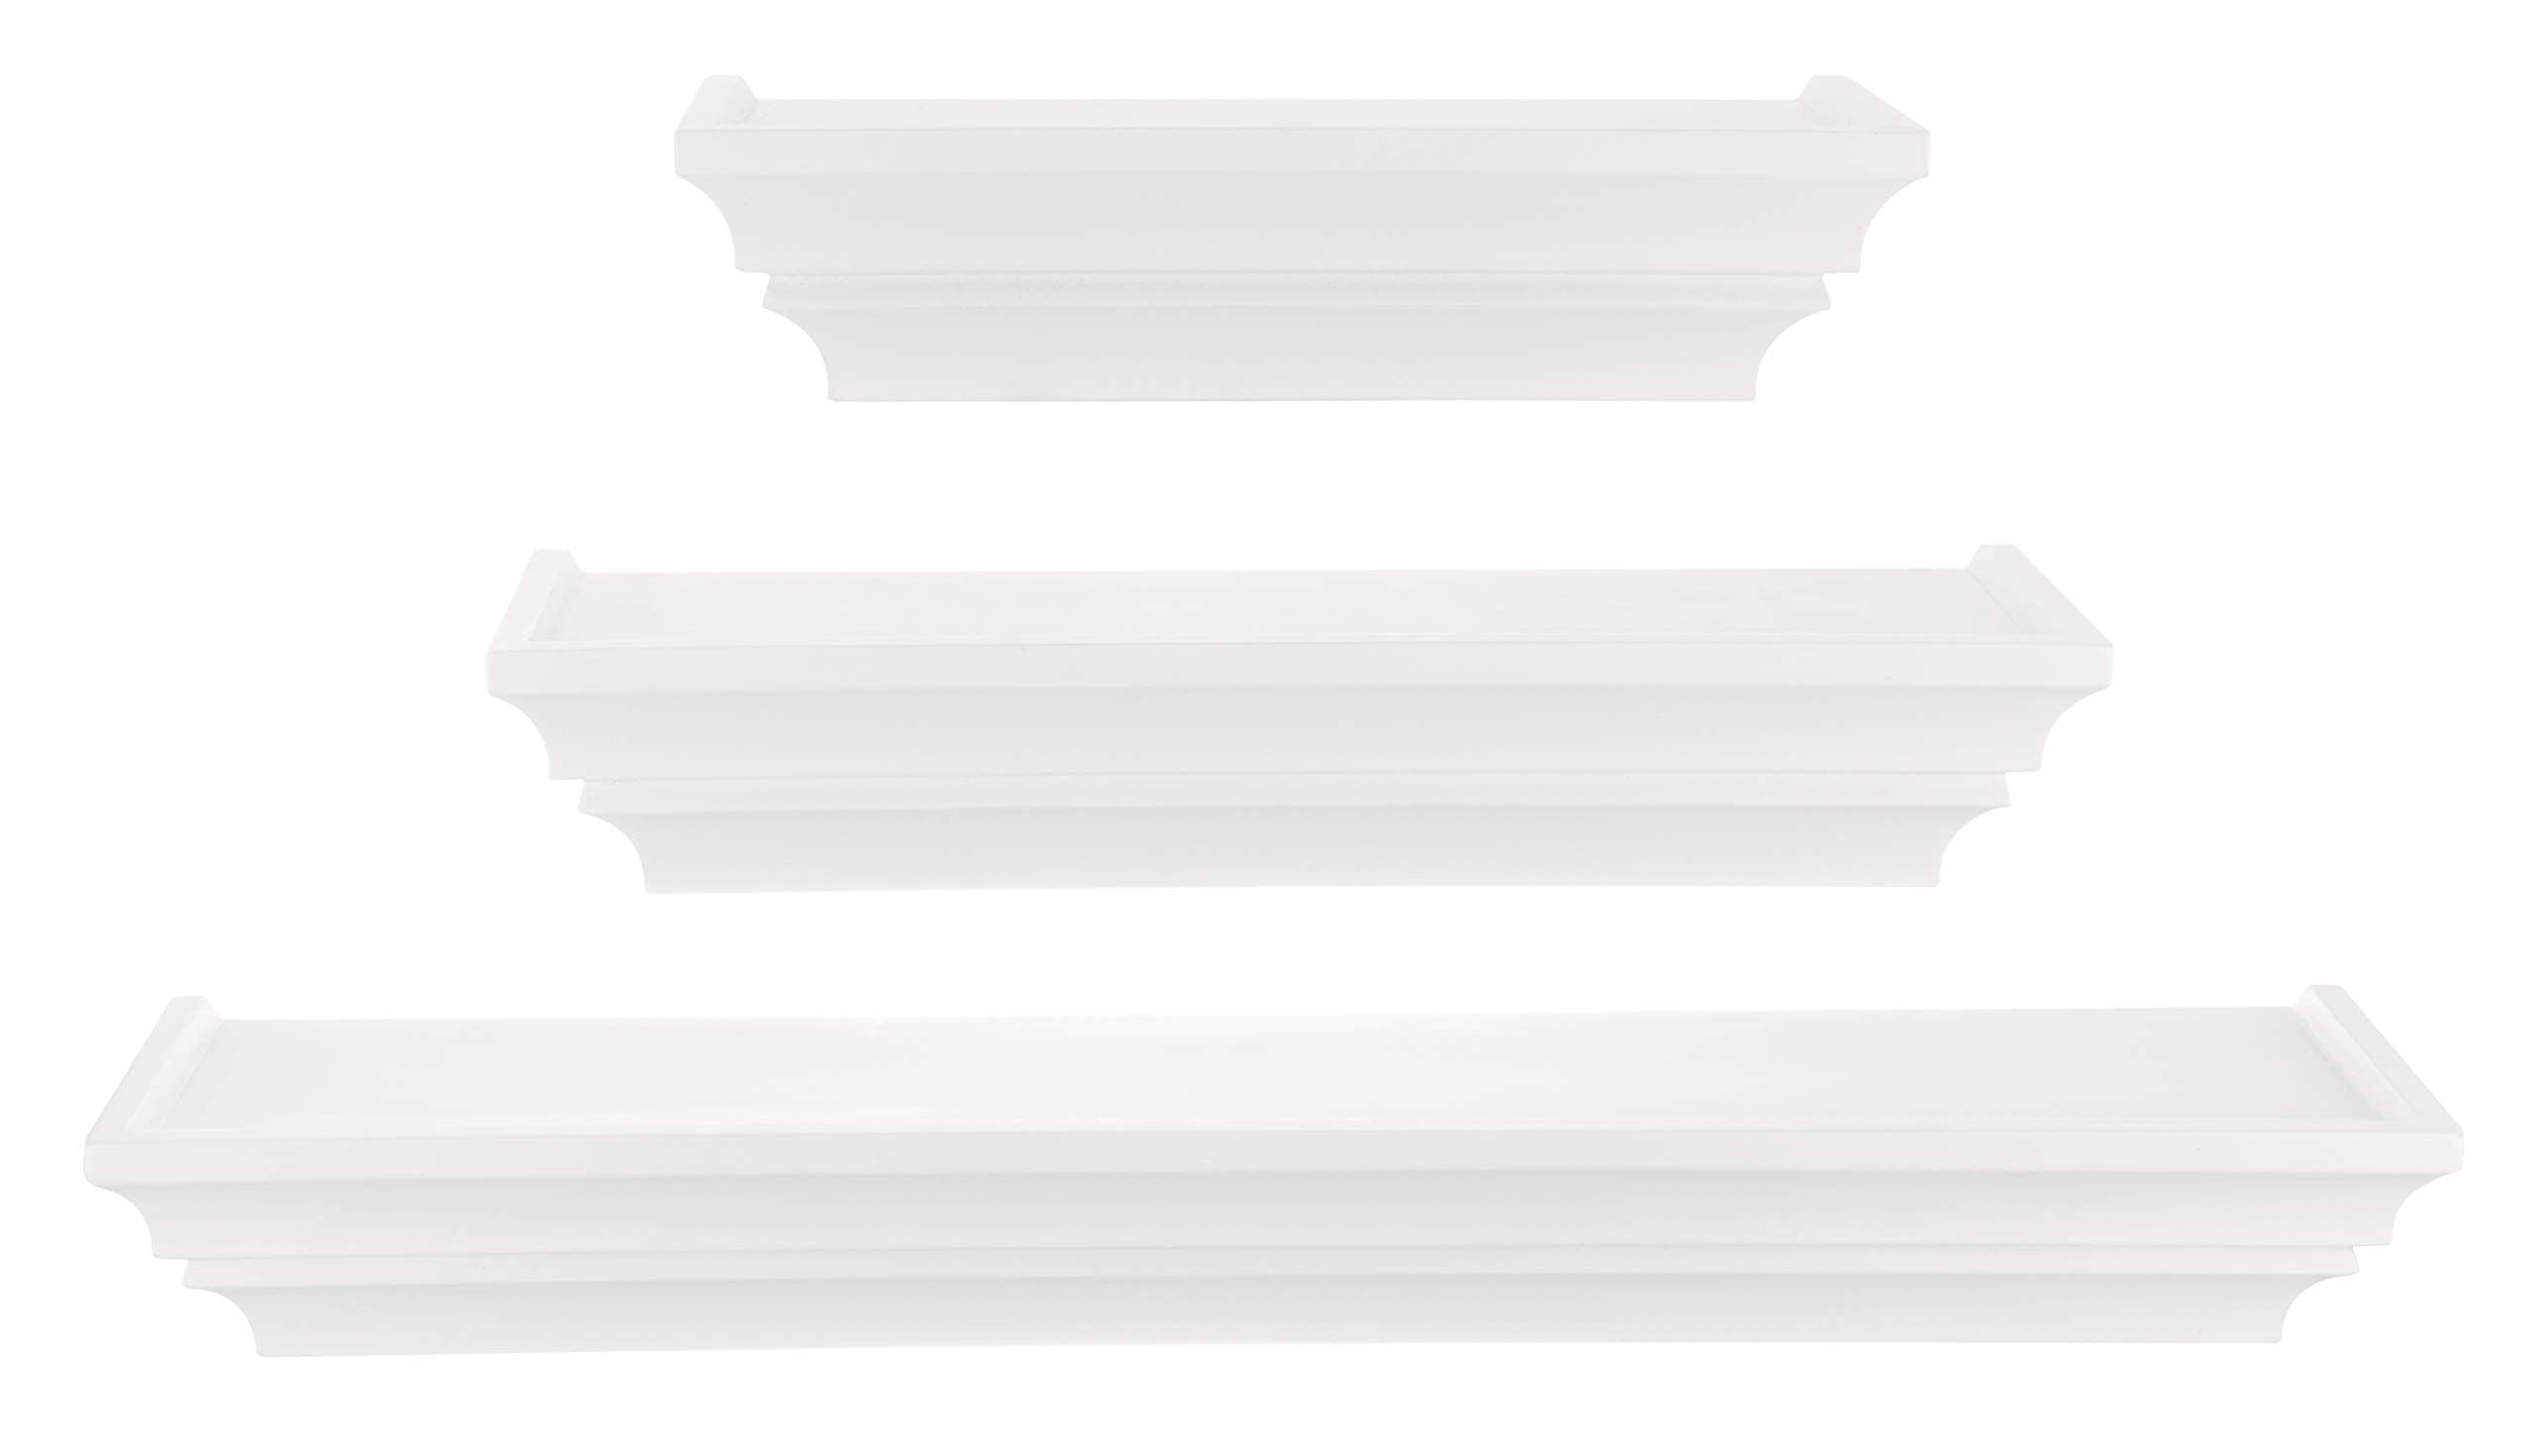 nexxt madison contoured wall ledges 12 inch 16 inch 24 inch white set of 3